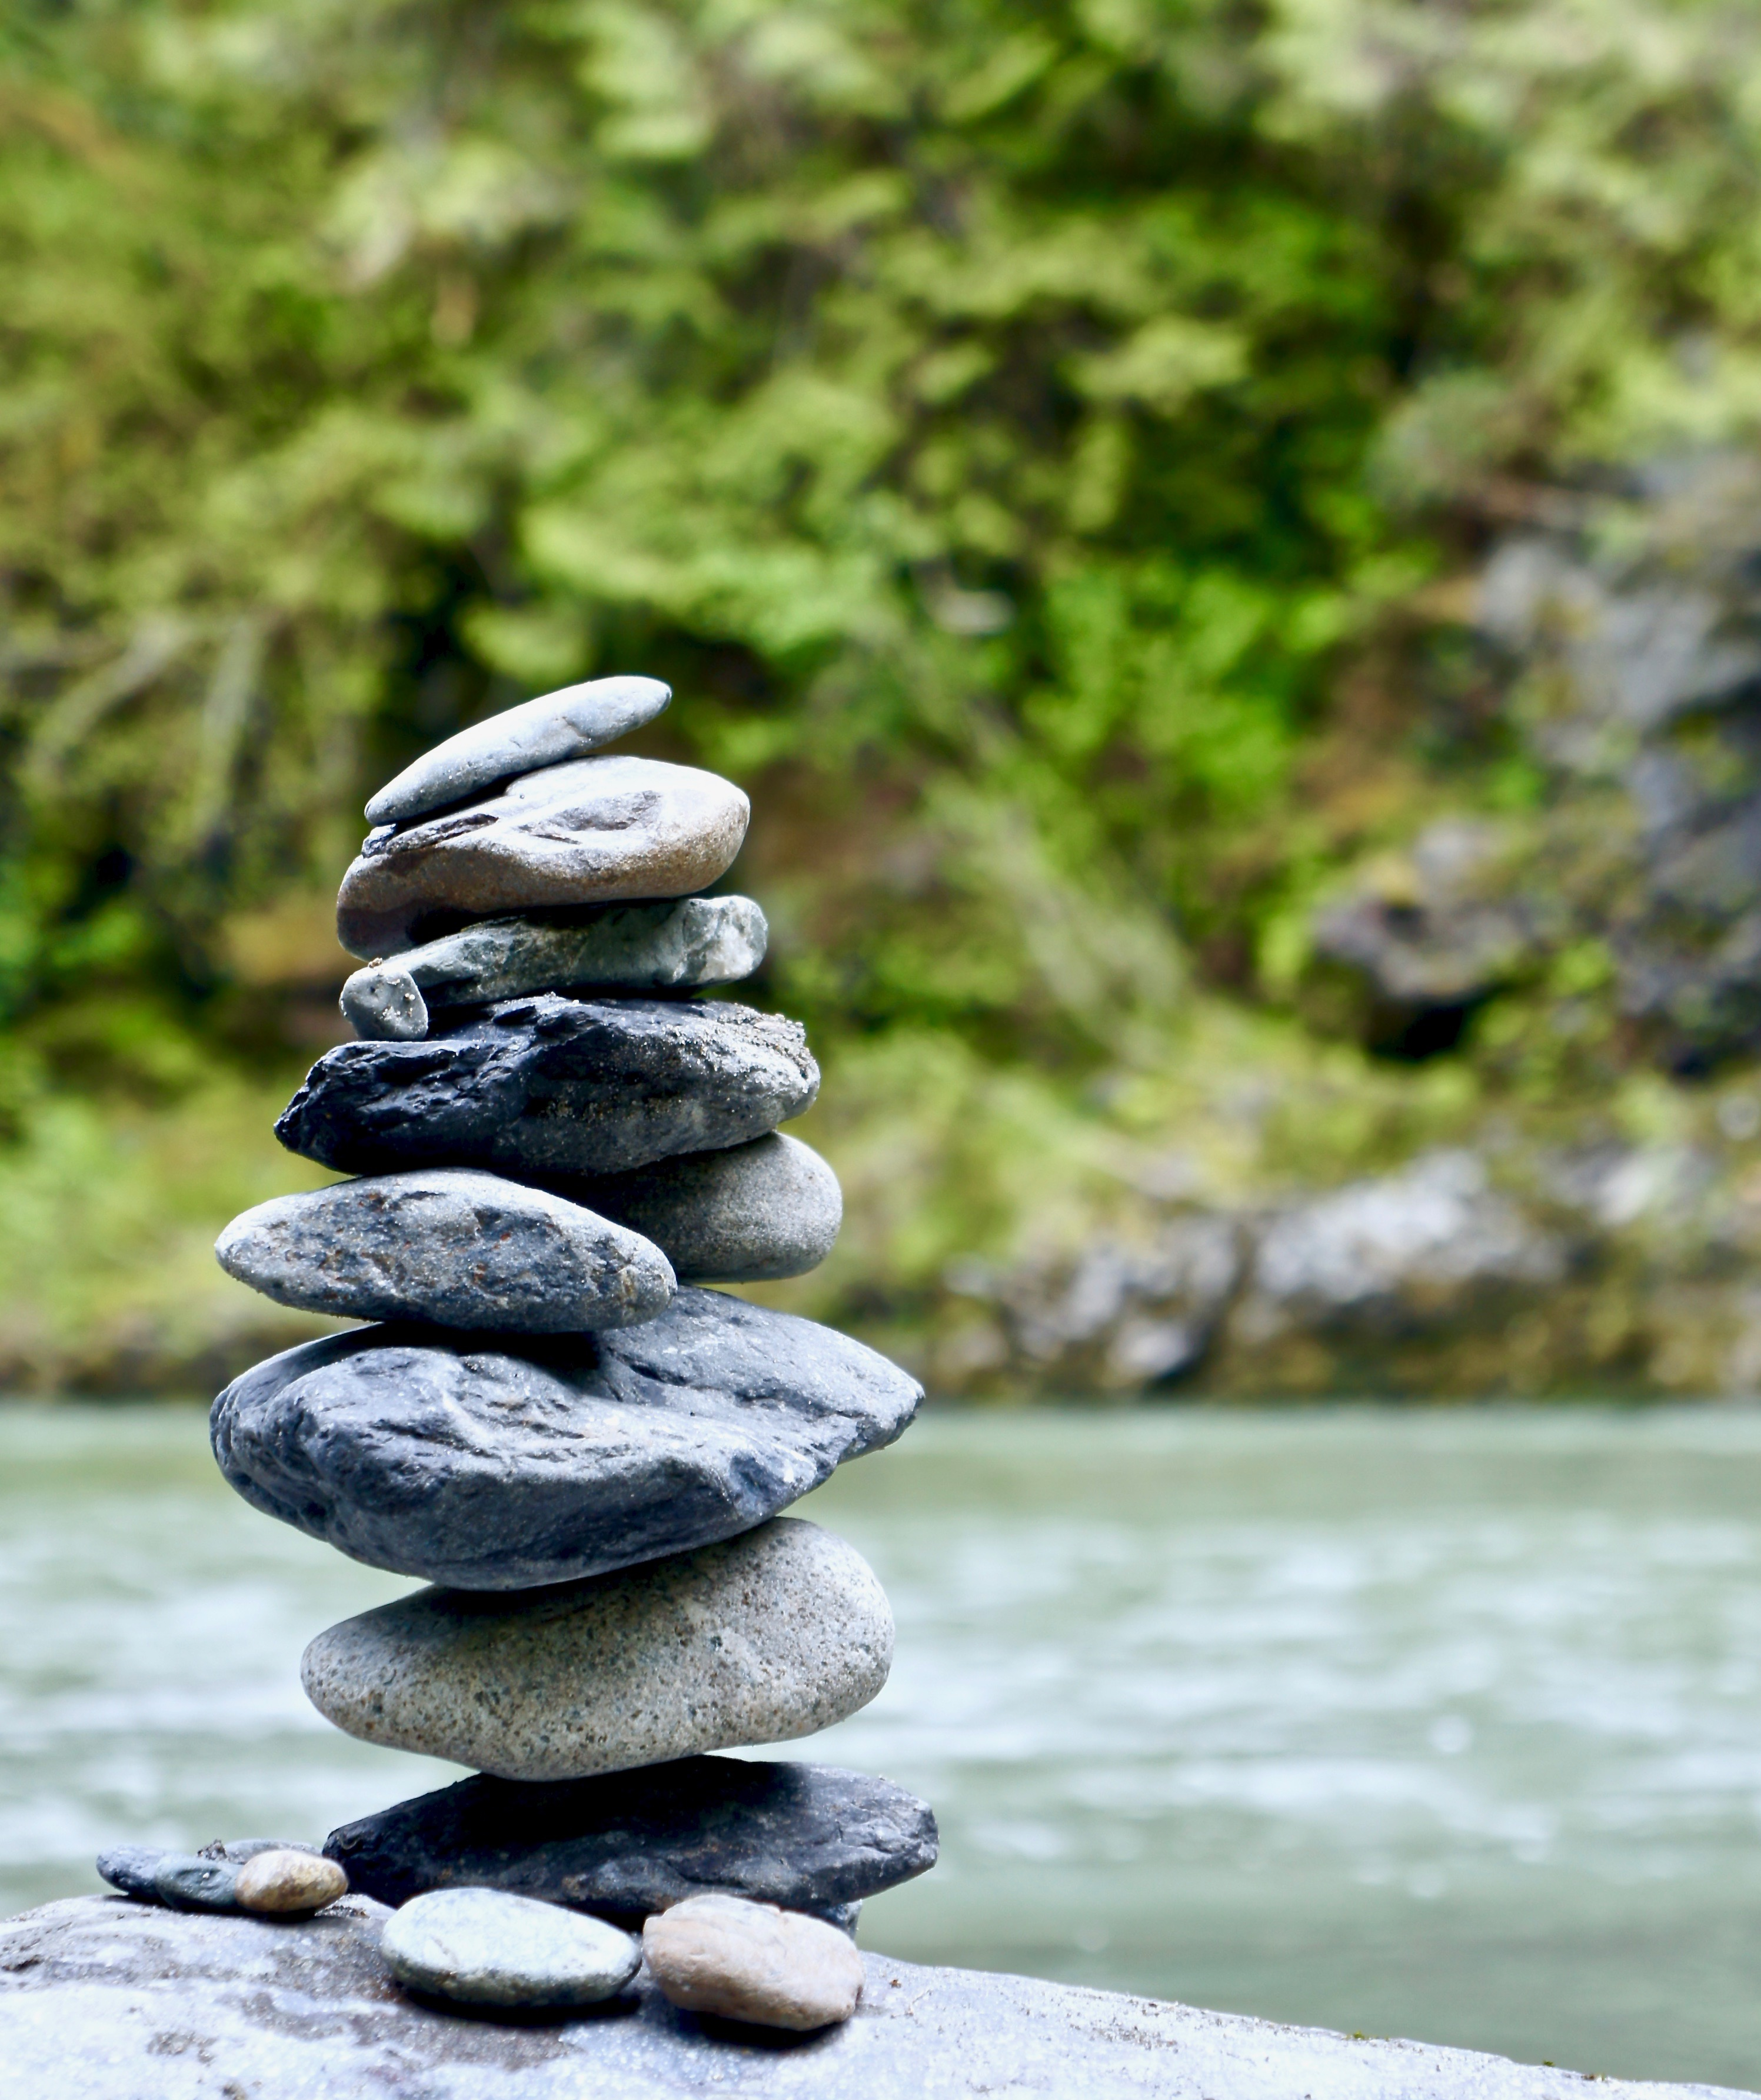 Rocks stacked up alongside the Stillaguamish river.